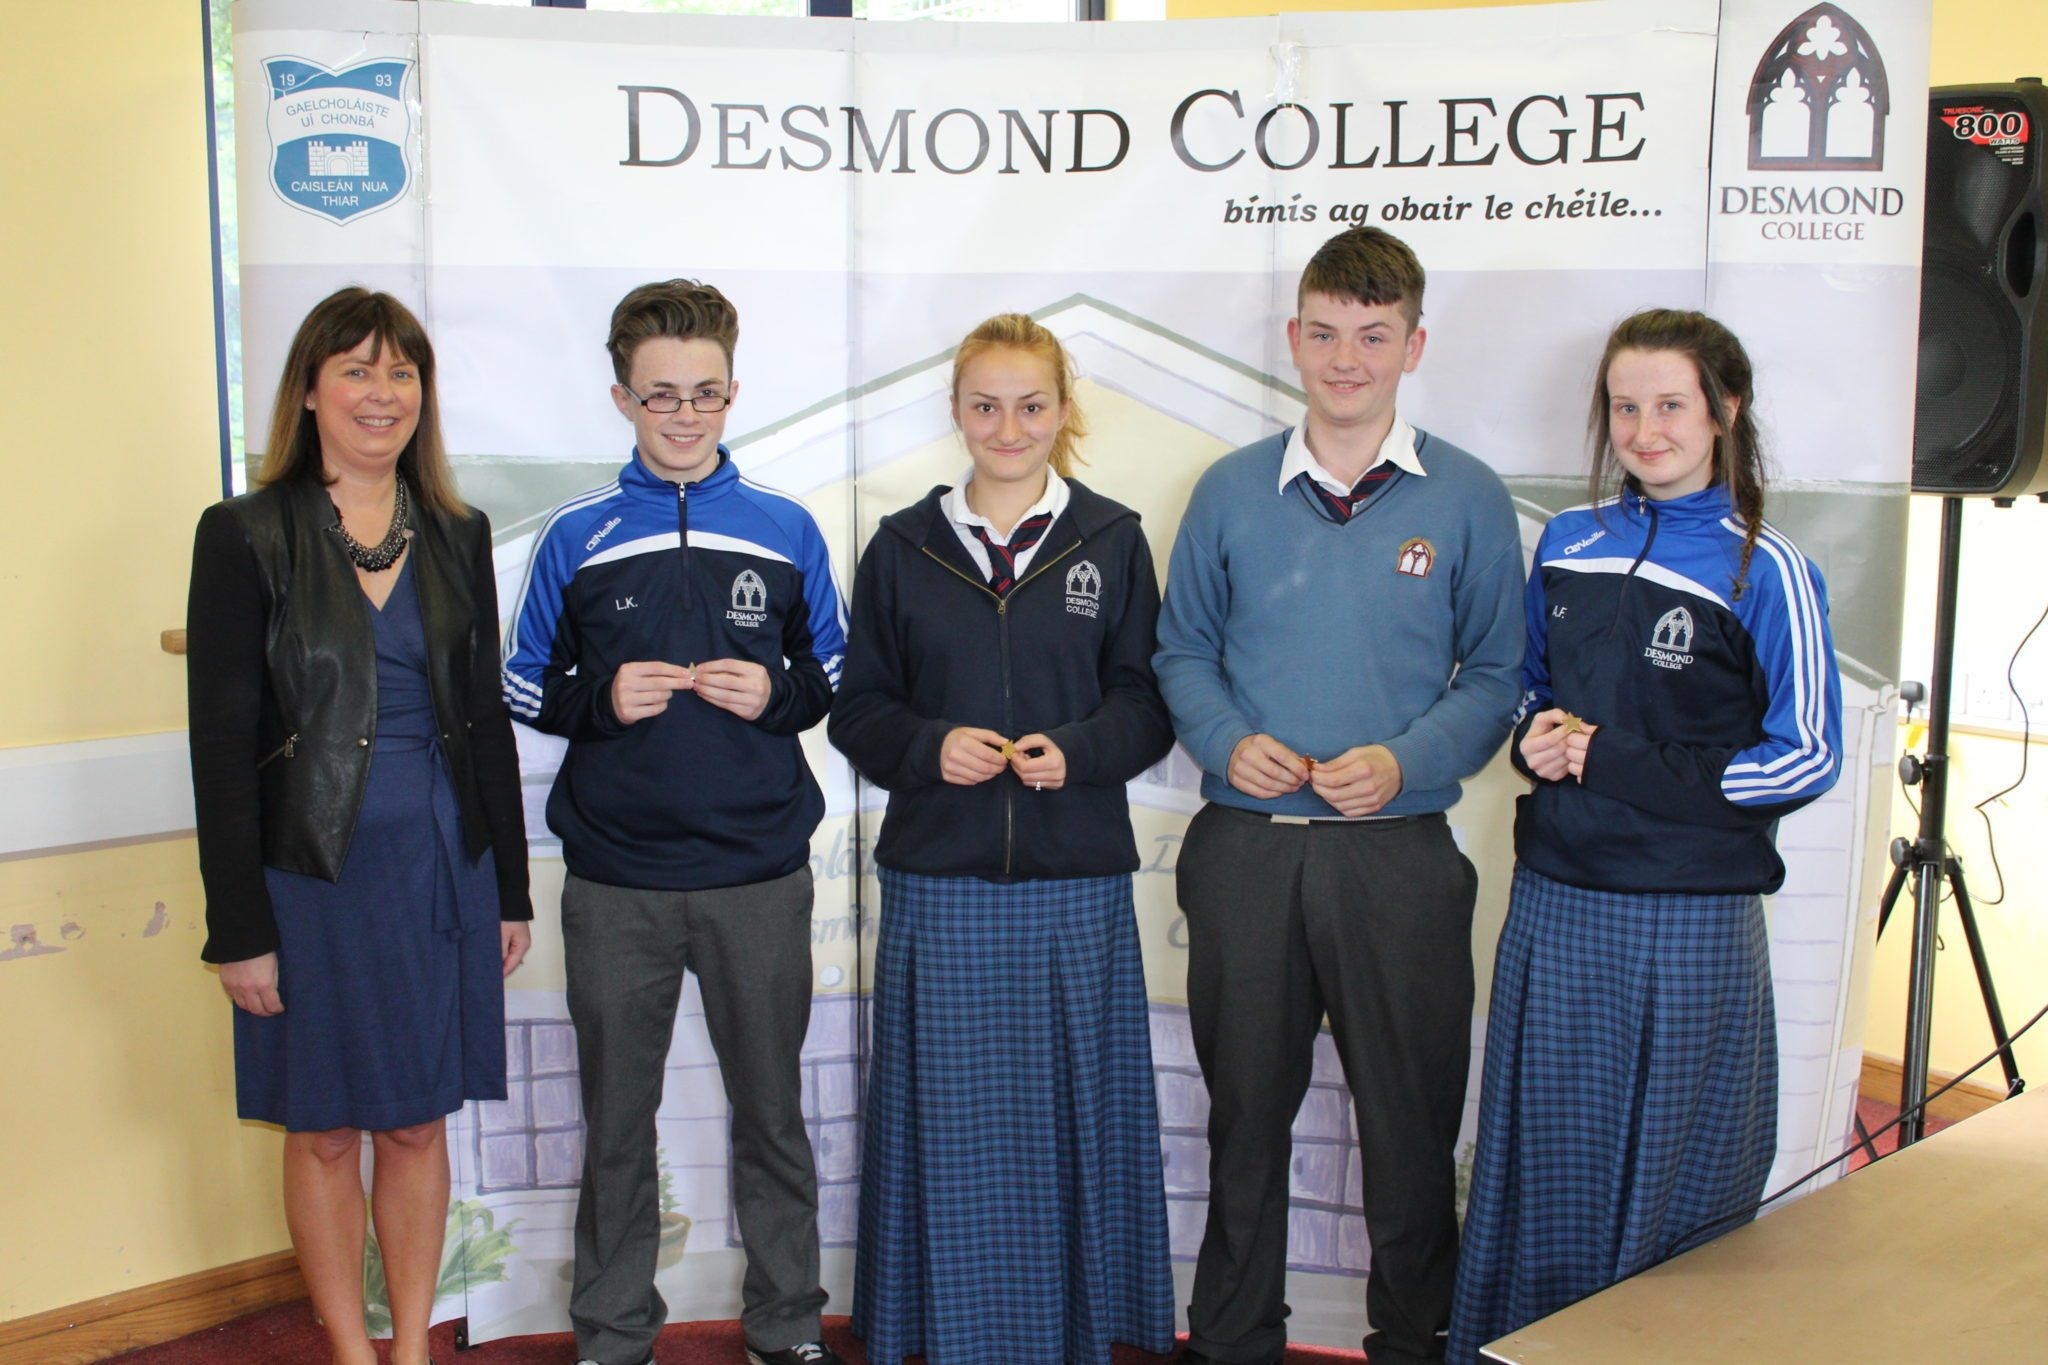 Desmond College Student Awards: May 2015: DEDICATION AND COMMITMENT AWARDS: 3rd year: Ms Cregan with Liam King, Elena Encheva, Colm Copse, and Aine Feely